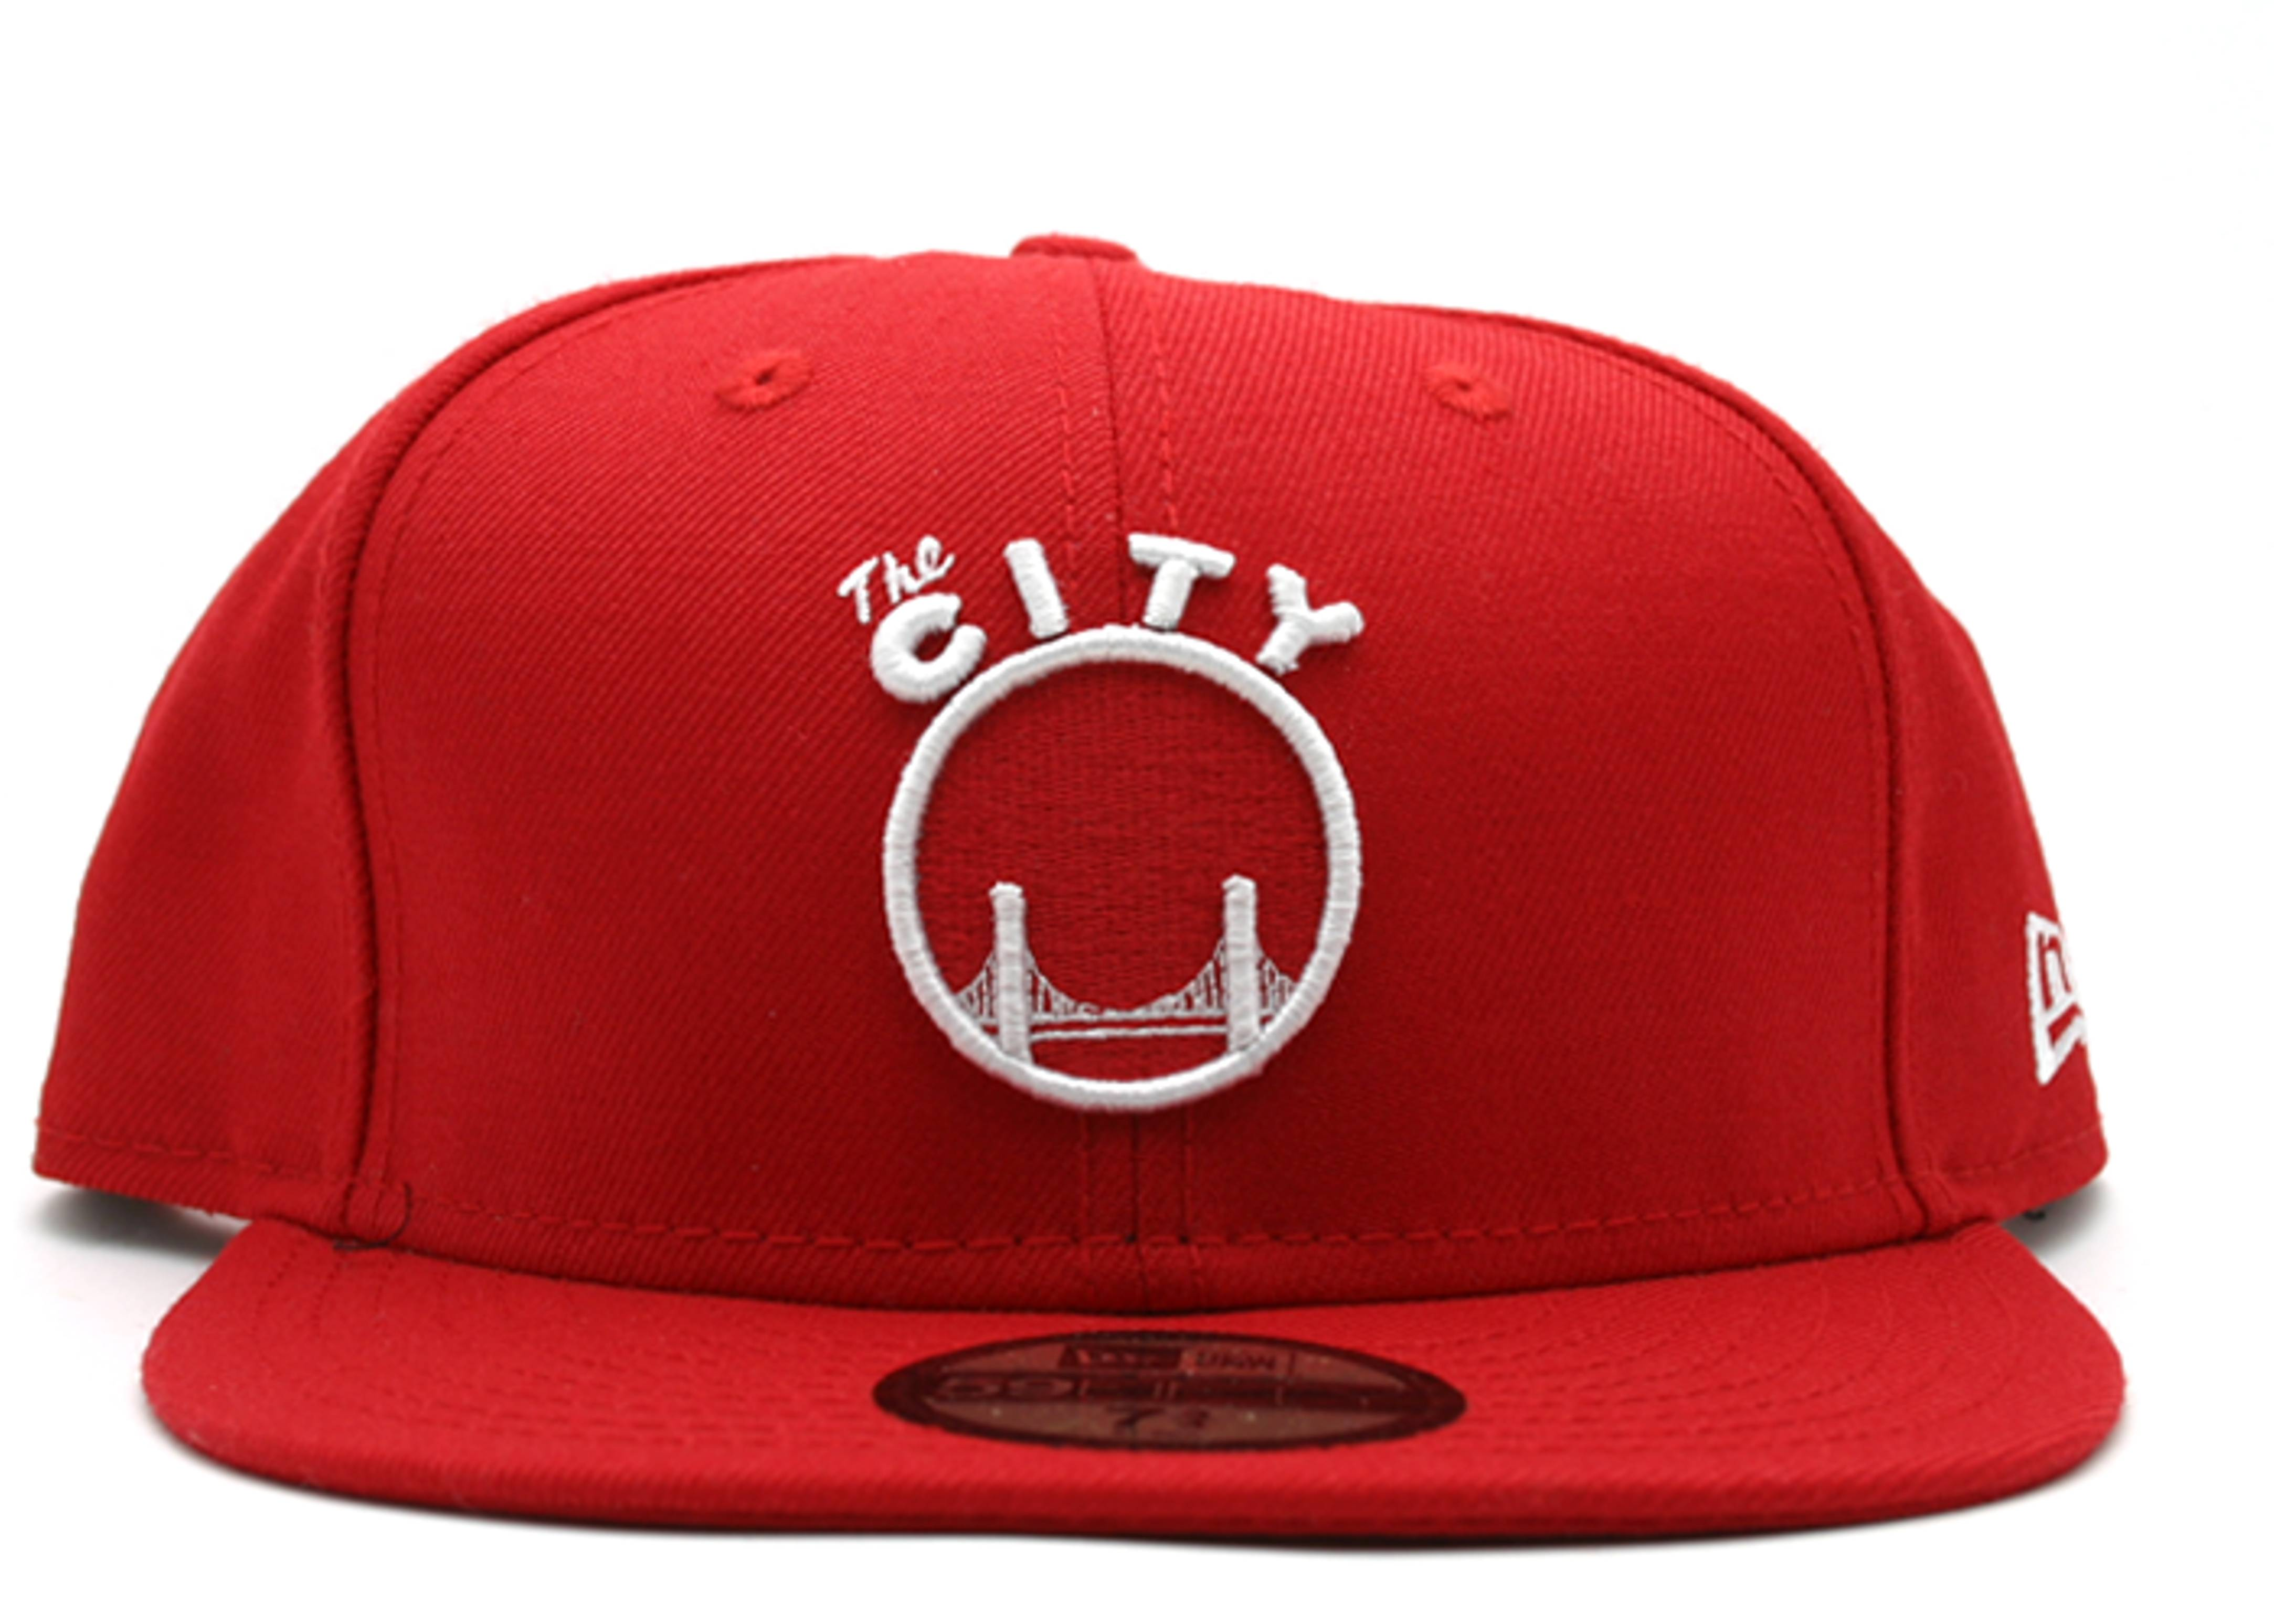 san francisco warriors fitted